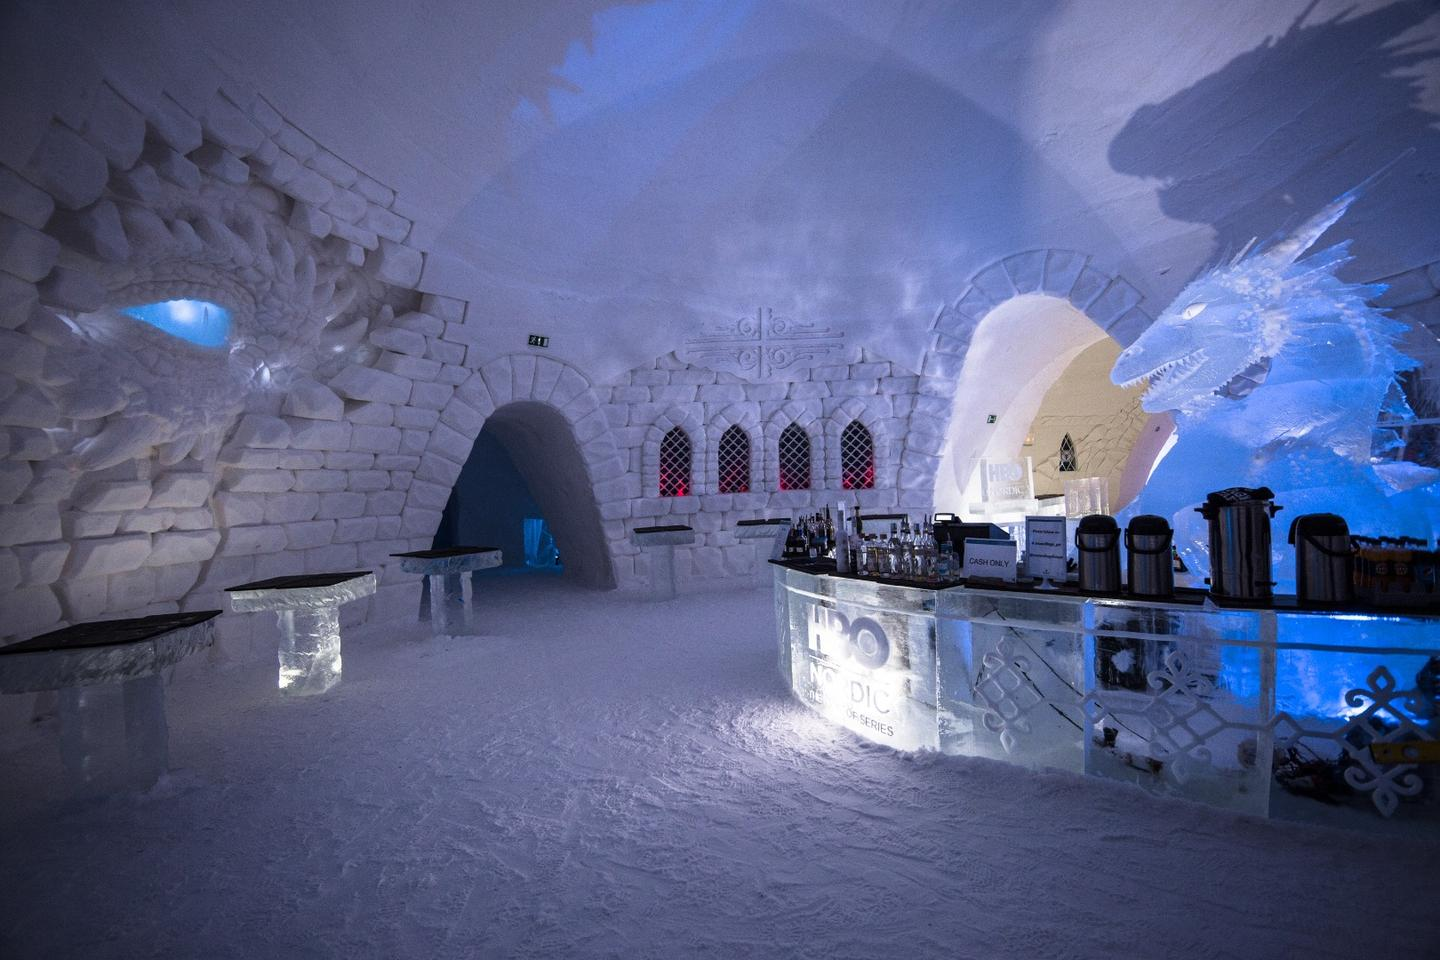 The SnowVillage is located roughly 200 km (124 miles) above the Arctic Circle